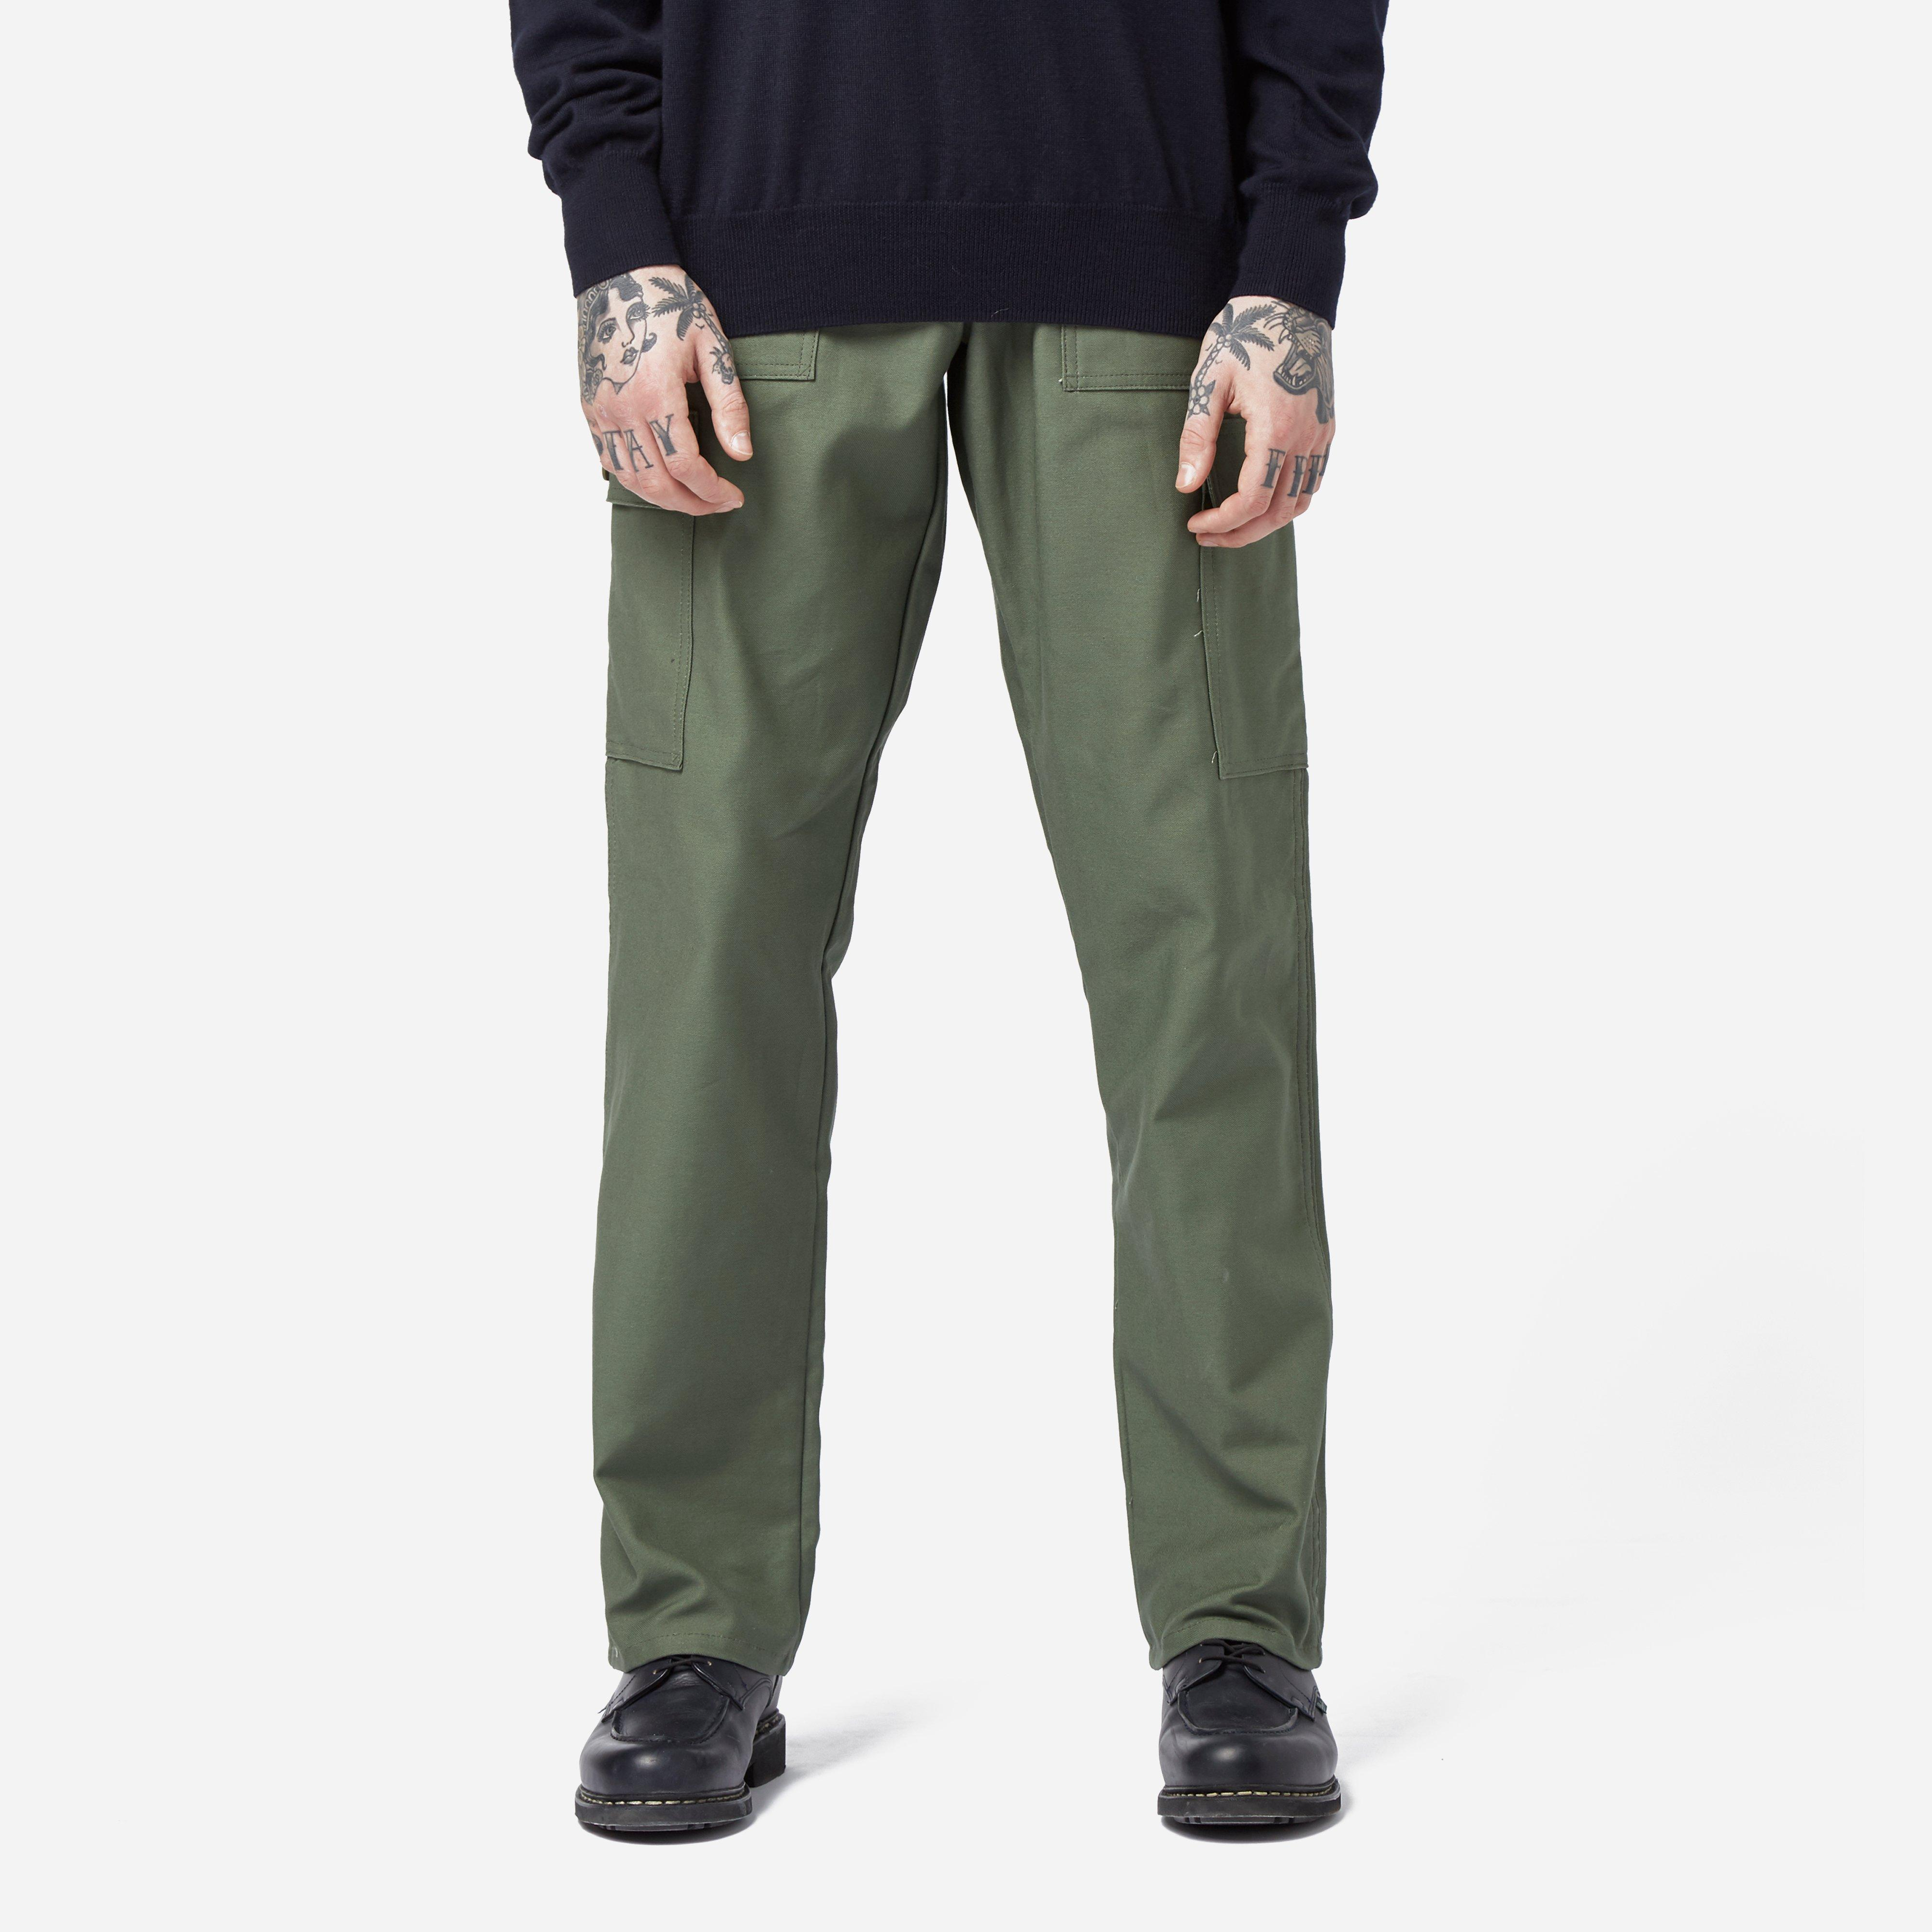 Stan Ray 1900 6 Pocket Cargo Pant